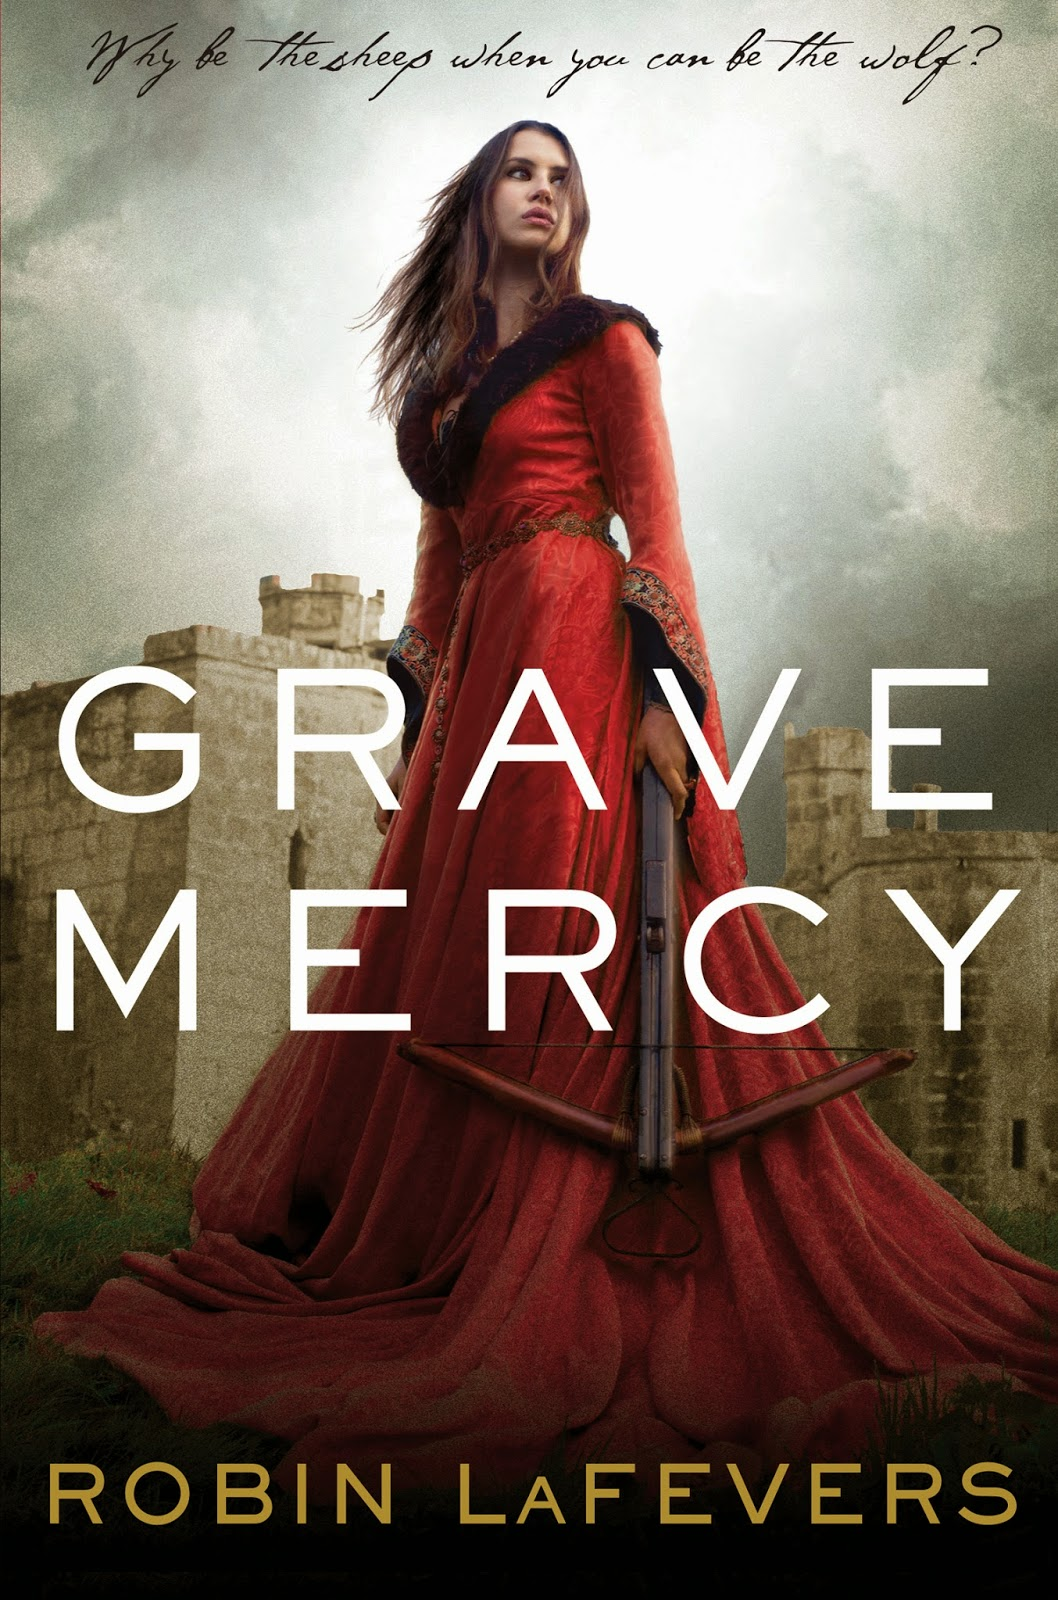 http://smallreview.blogspot.com/2012/04/book-review-grave-mercy-by-robin.html